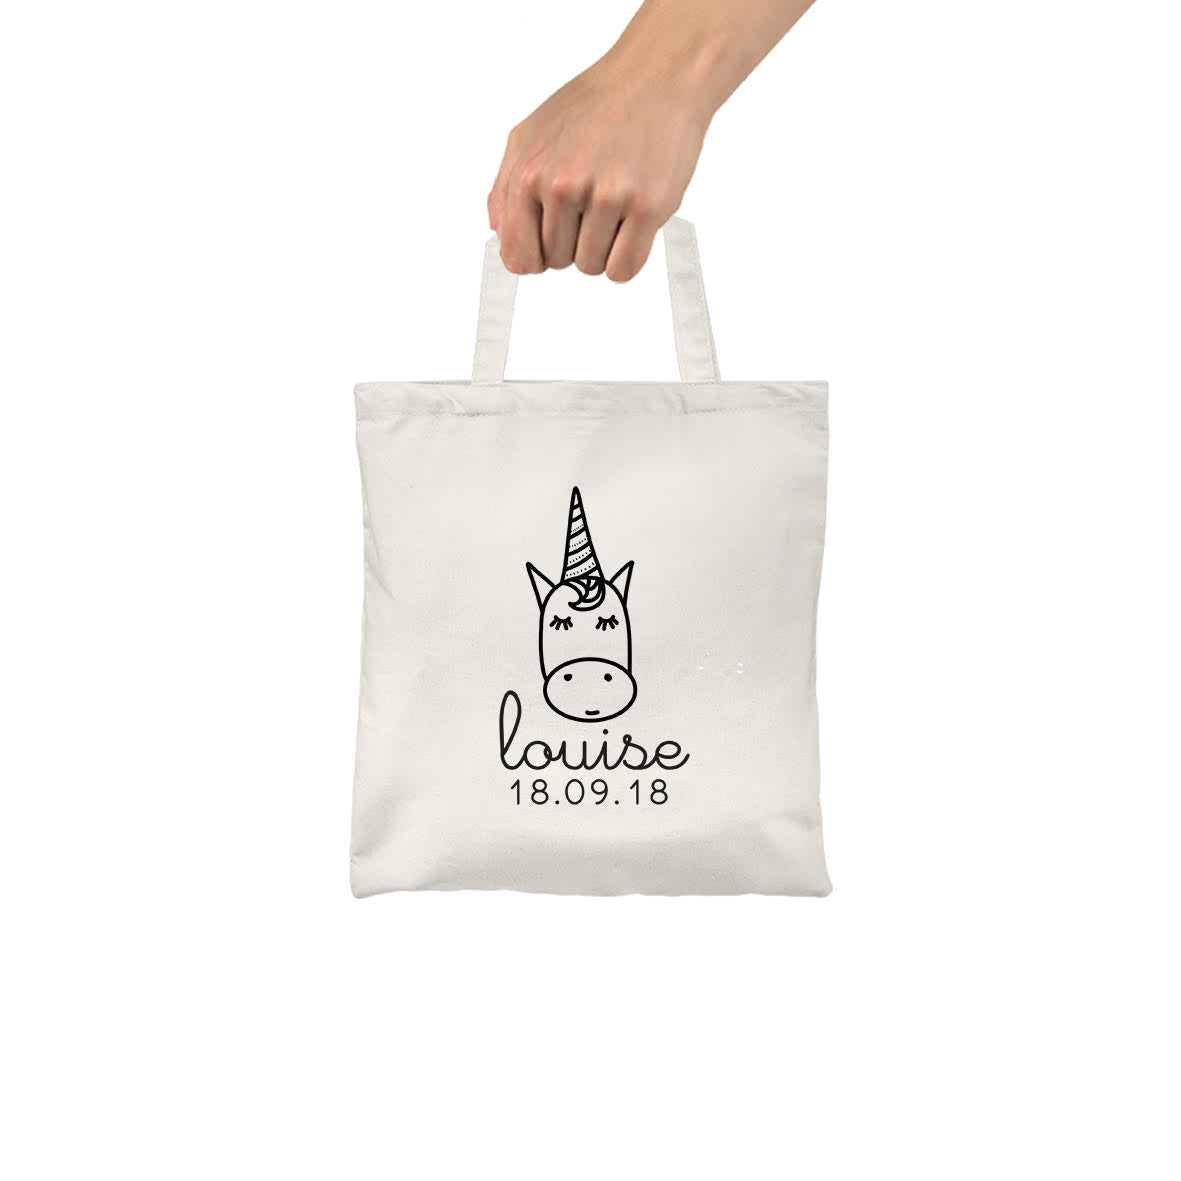 mes petites affiches customizable unicorn tote bag for kids my petite french box. Black Bedroom Furniture Sets. Home Design Ideas